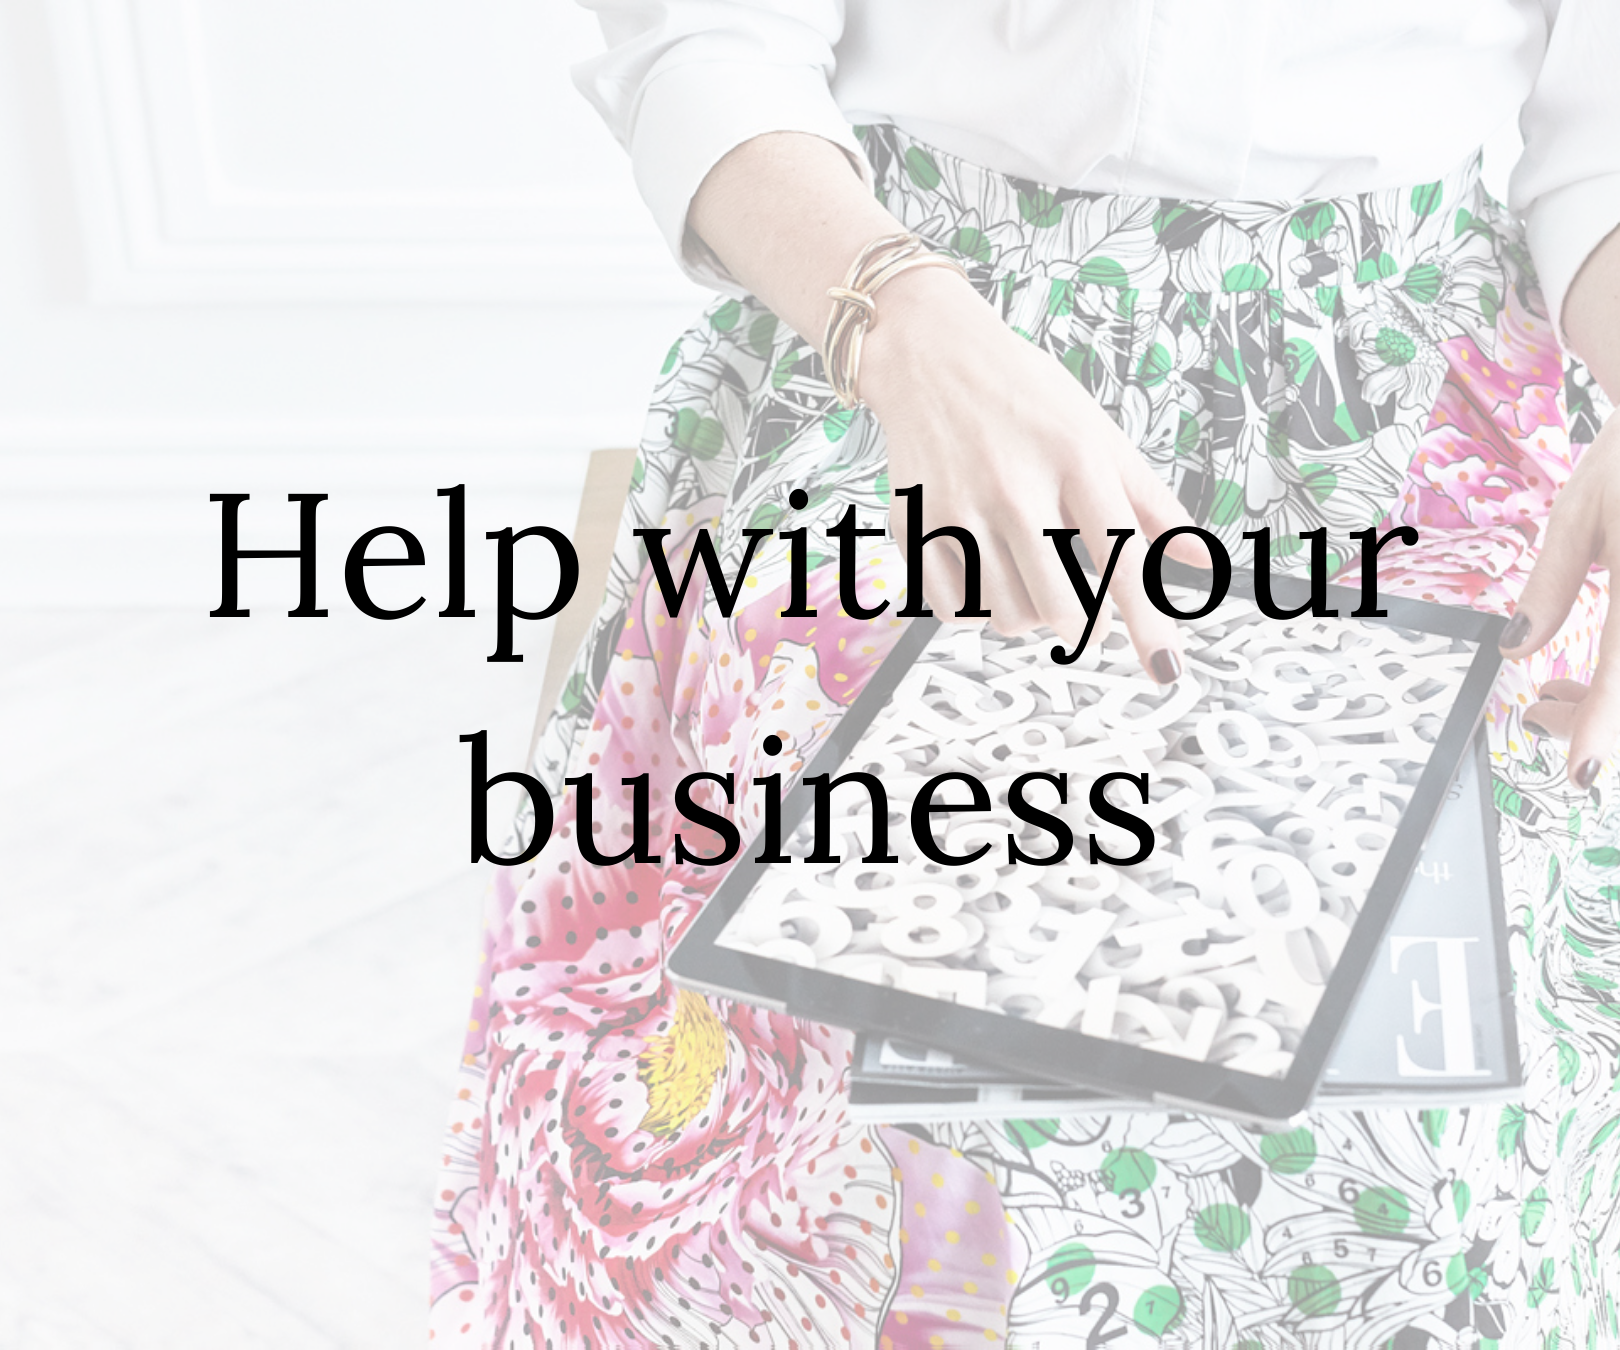 Help with your business